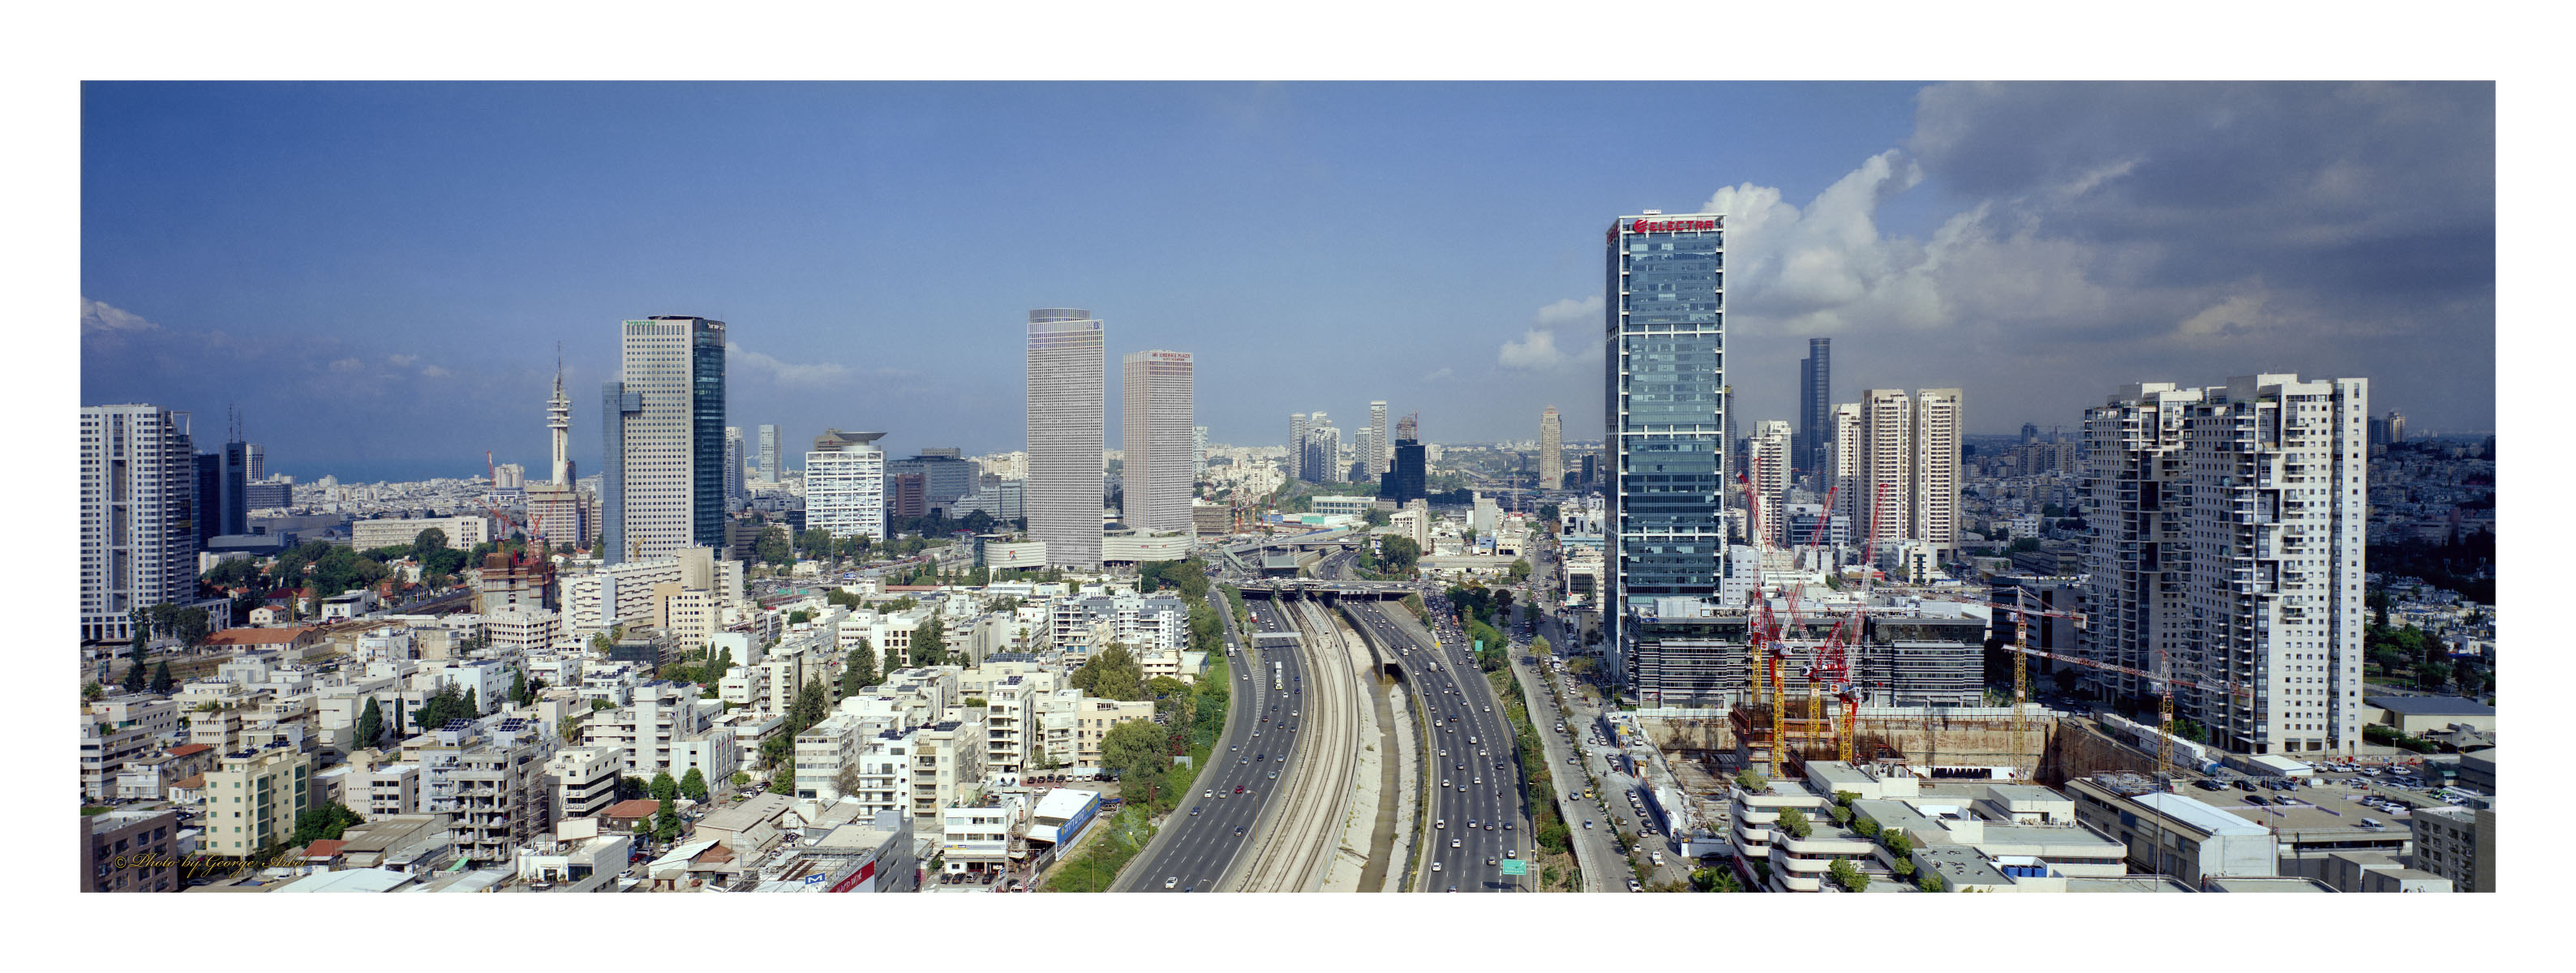 Tel Aviv  Highways